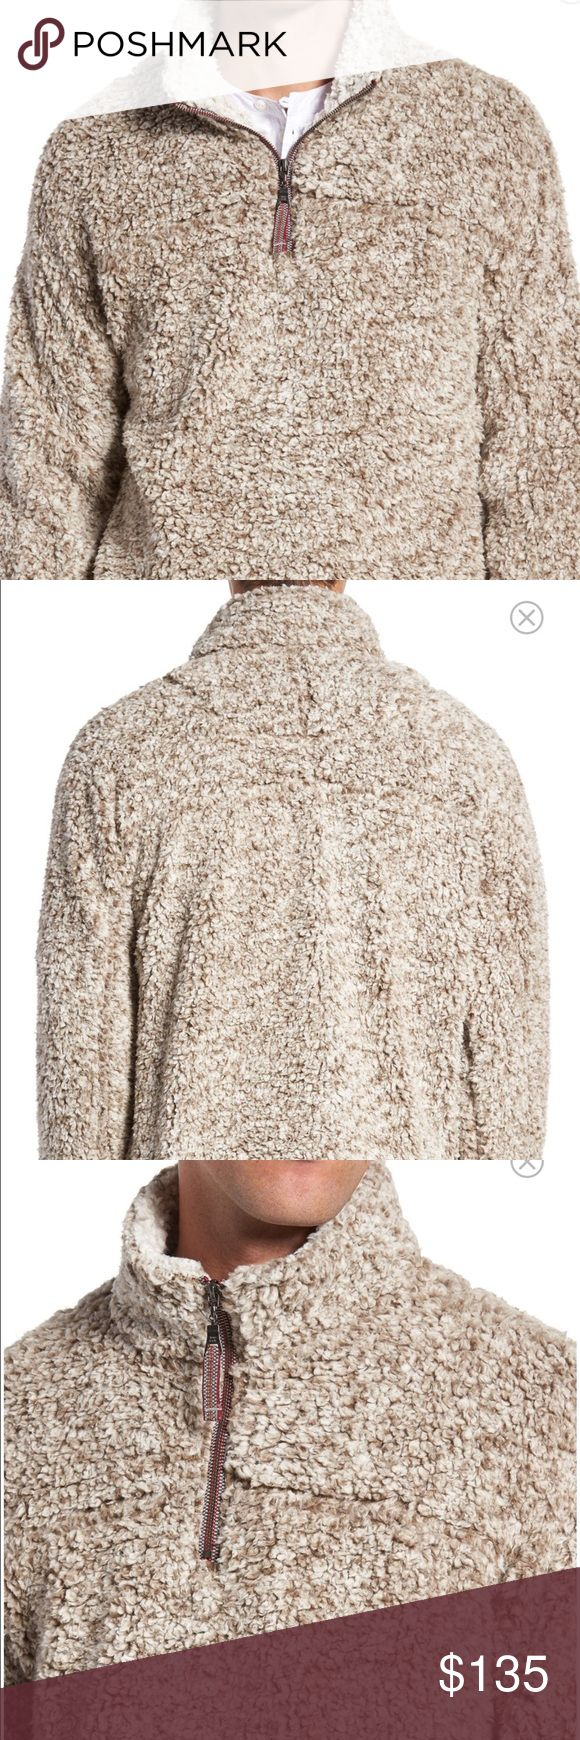 NWT true grit pullover These are sold out most places. I am even saling with a little discount also. This is new with tags! No trades. Firm on price. true grit Jackets & Coats Ski & Snowboard